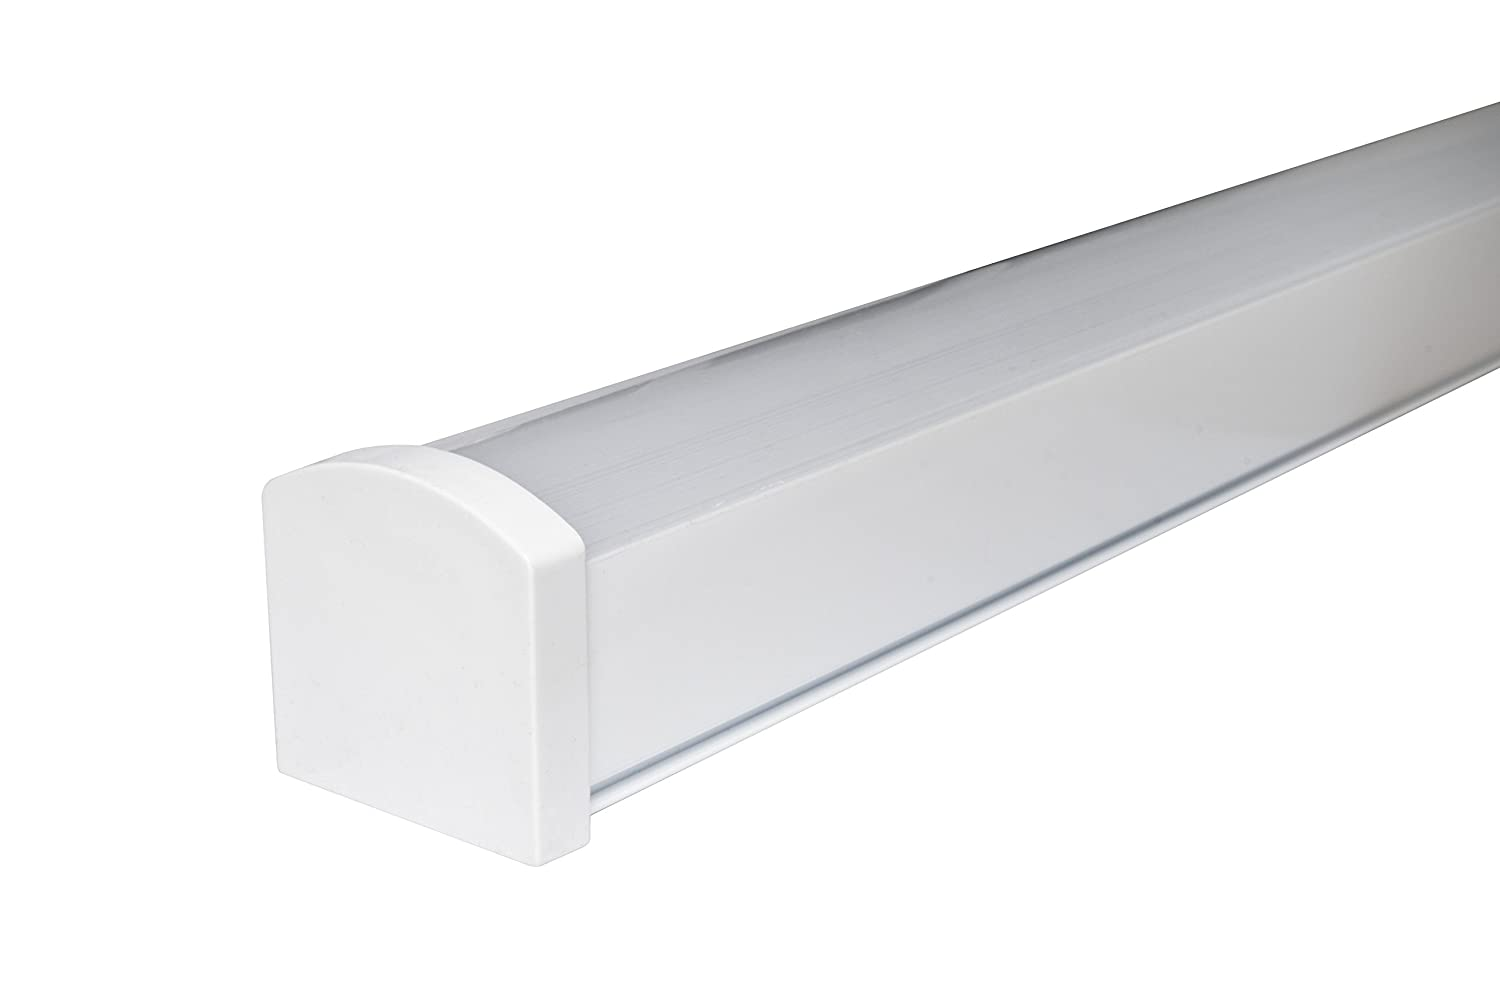 45W 5ft Industrial LED Batten Tube Light Surface Mount or Hanging IP Rated Triproof Fittng in Cool White T8 Fluorescent Replacement Home or Commercial Use [Energy Class A+] Long Life Lamp Company